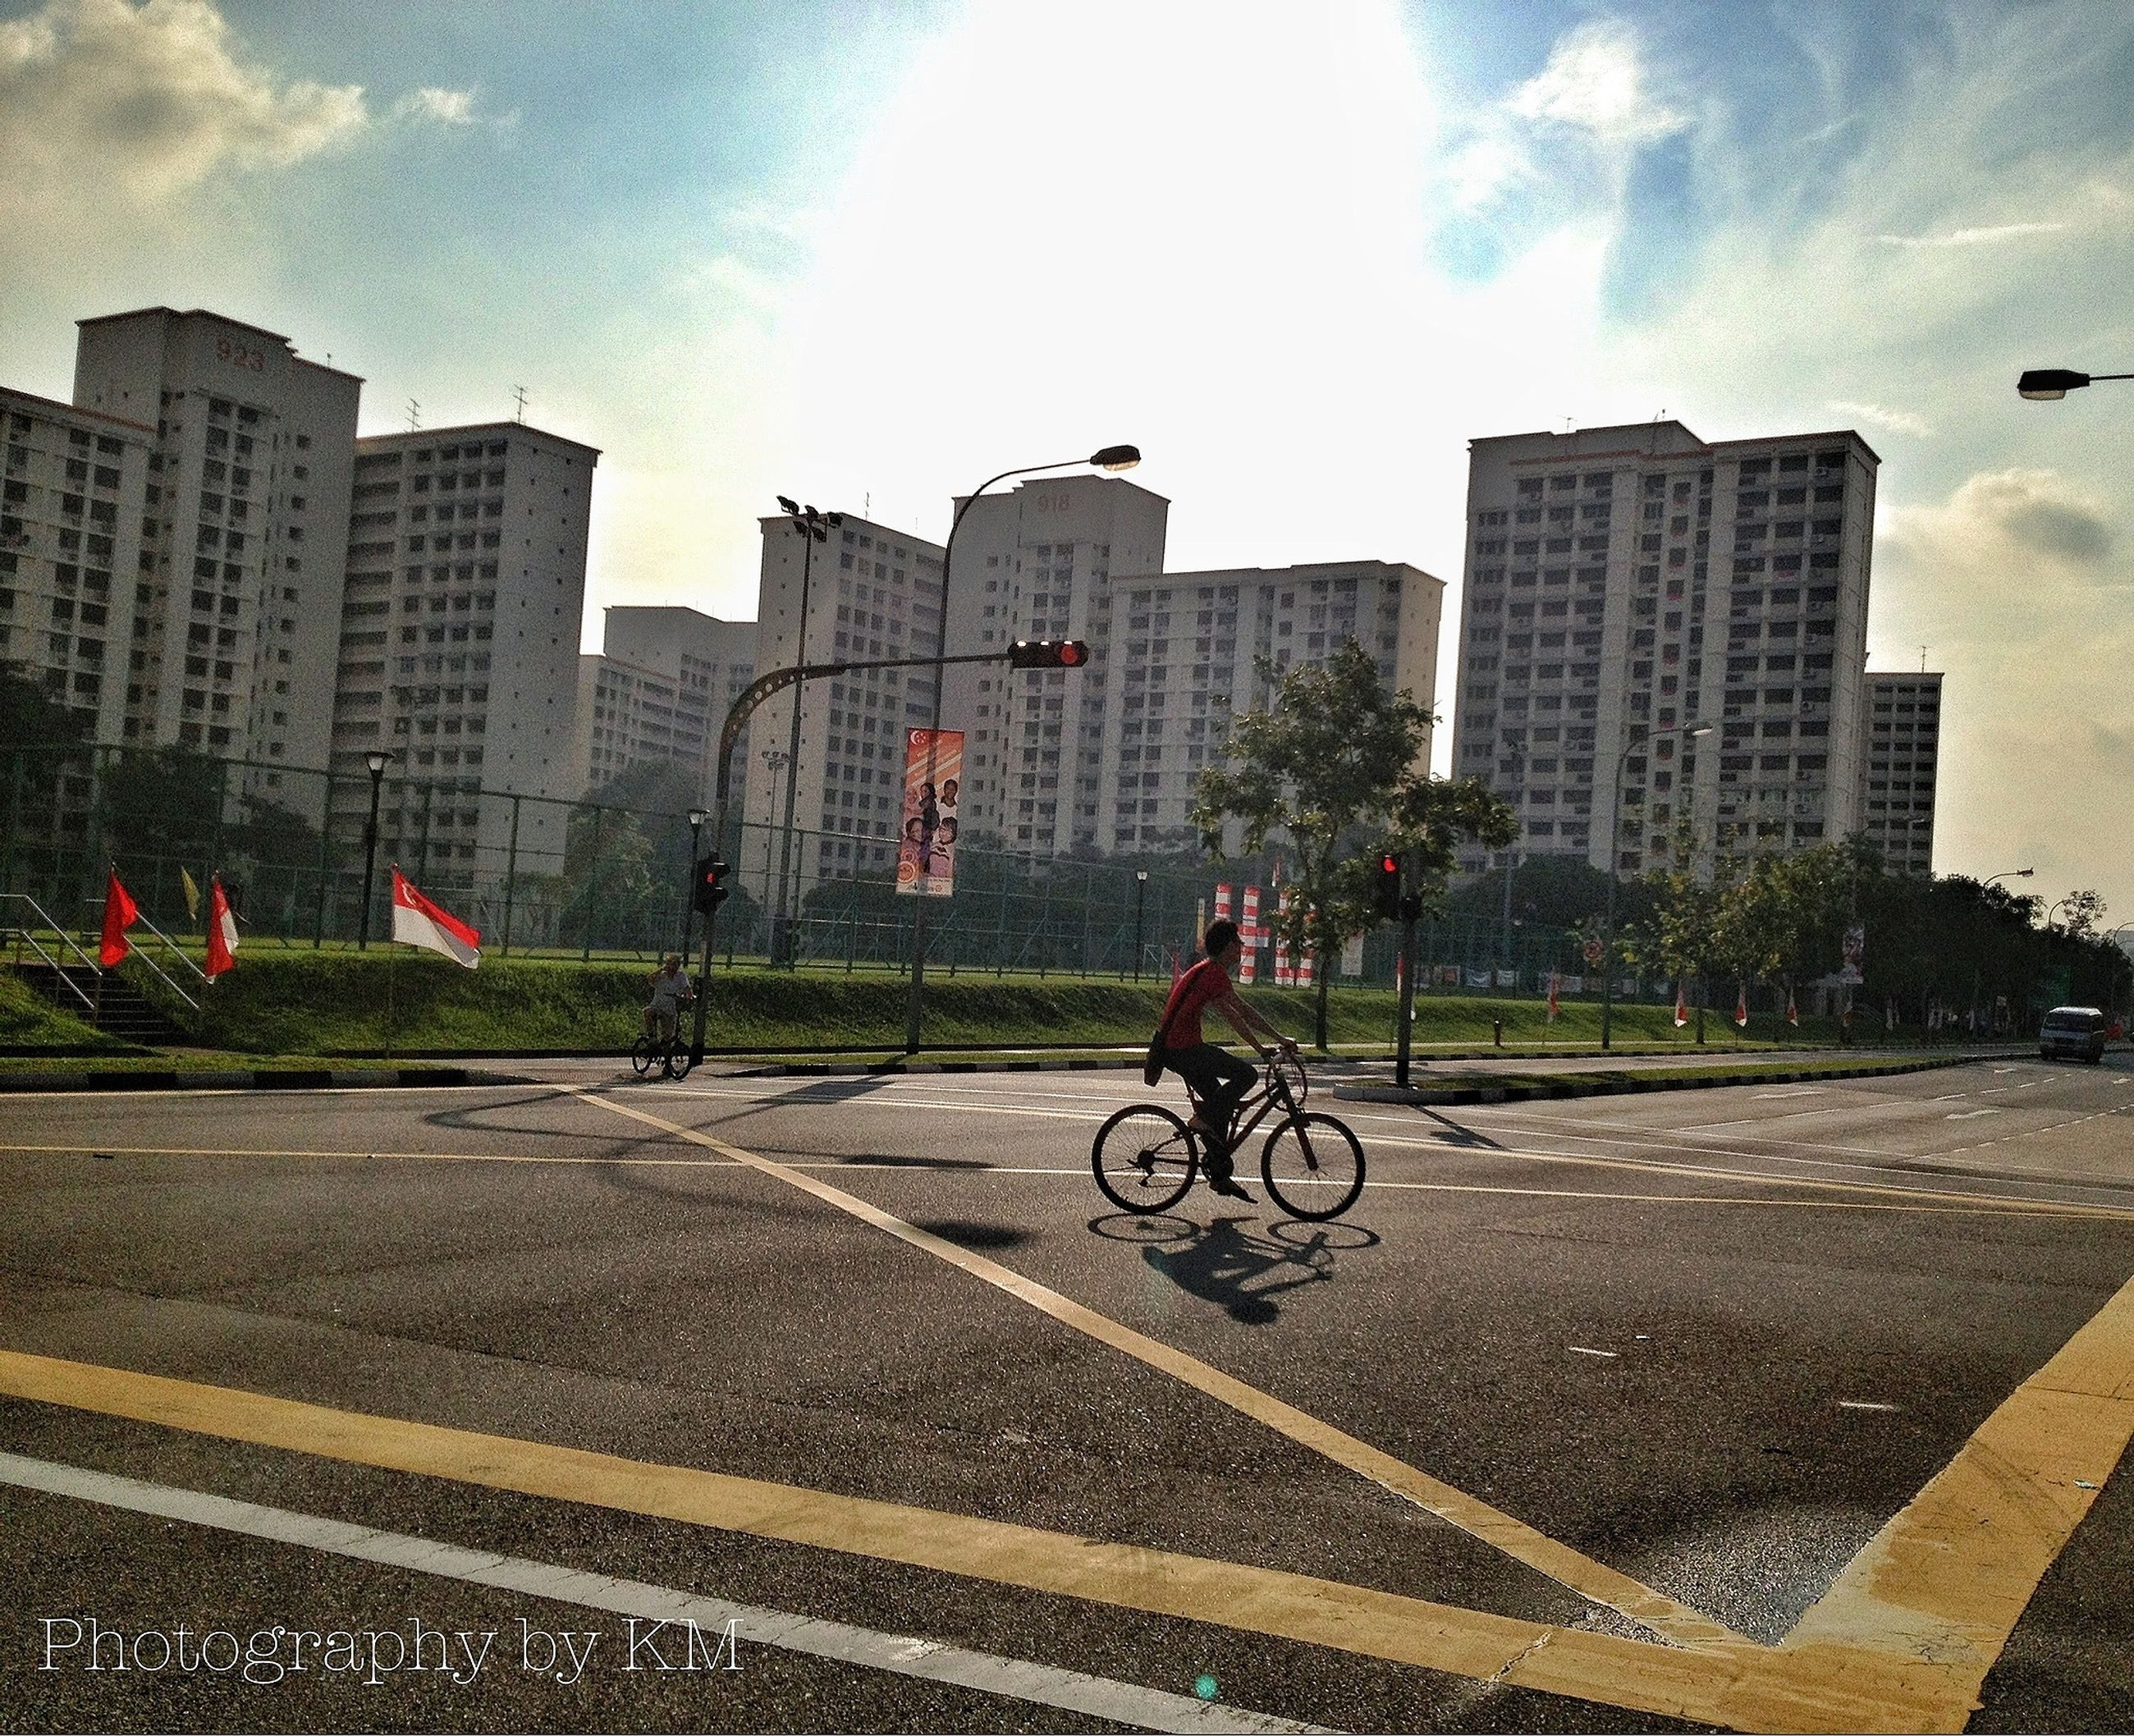 transportation, land vehicle, mode of transport, building exterior, architecture, bicycle, built structure, city, street, sky, road, car, cloud - sky, road marking, stationary, city life, parking, parked, riding